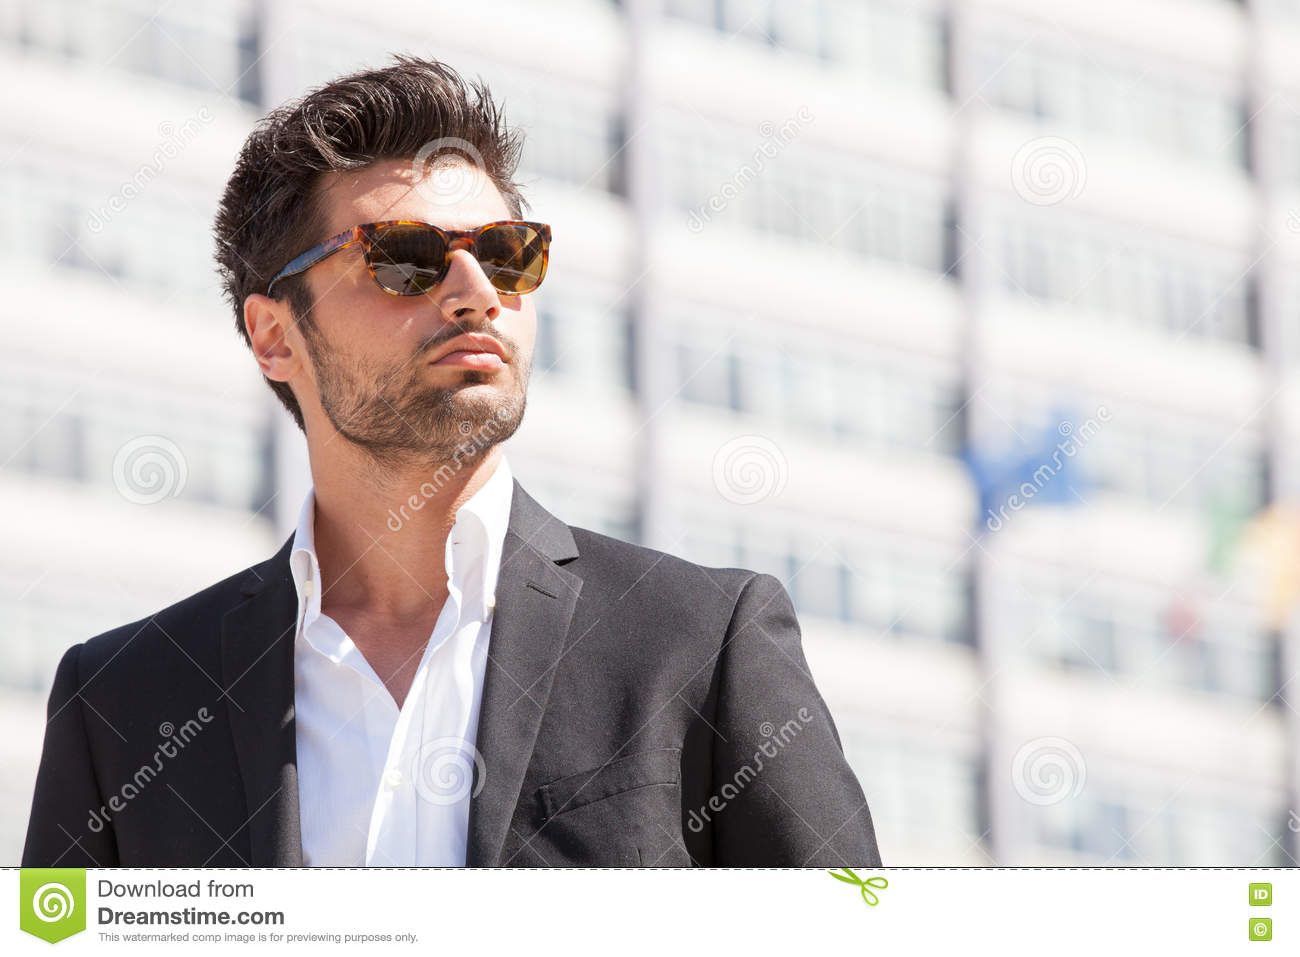 688068b3ca5 A beautiful and charming man with sunglasses outdoors. Stubble and blacks  hair. Intense light. White shirt and stylish jacket.